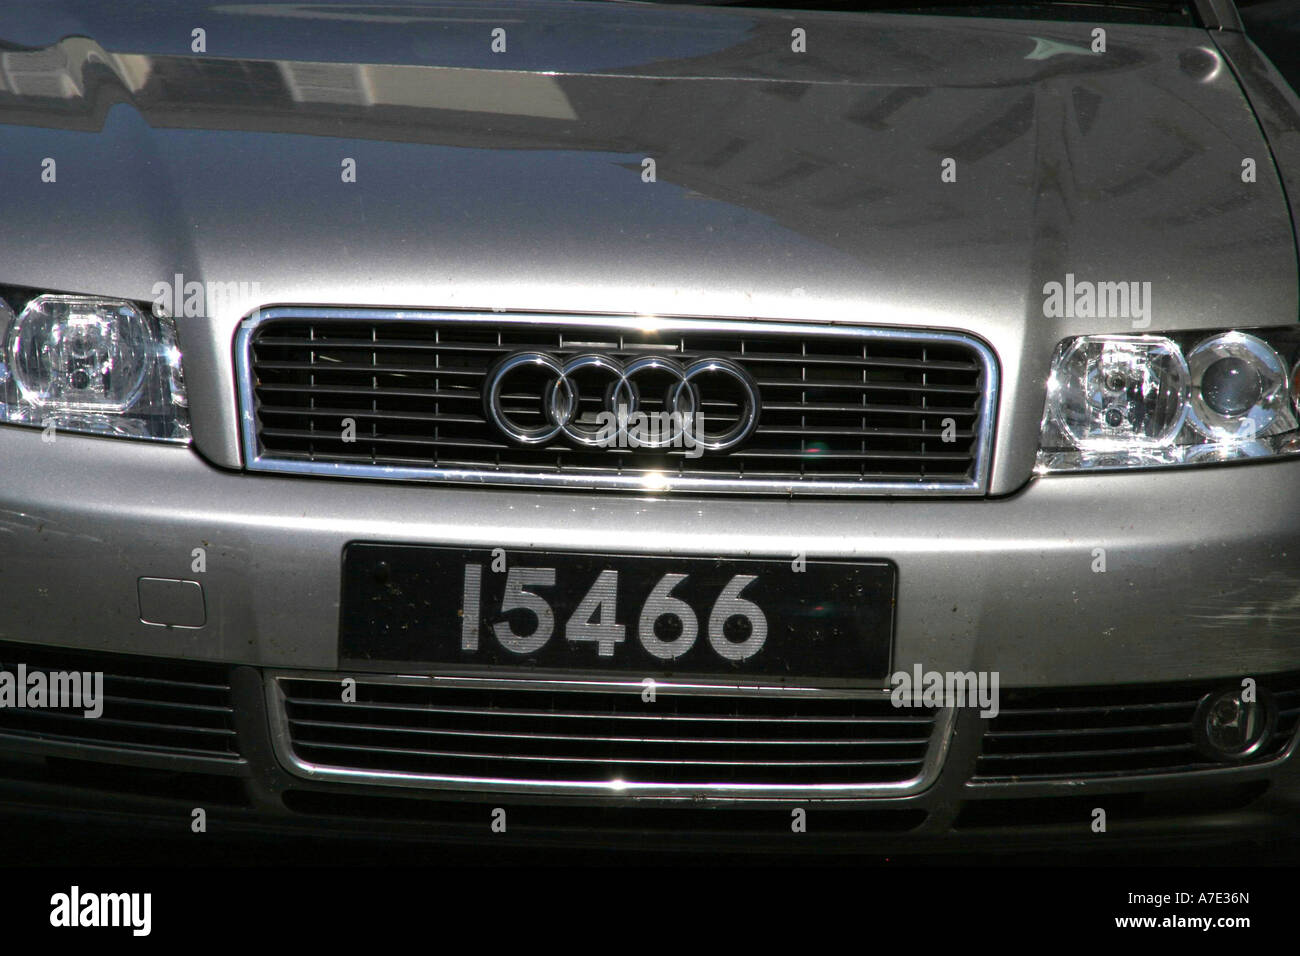 Guernsey Car Number Plate Stock Photo Royalty Free Image - Audi car number